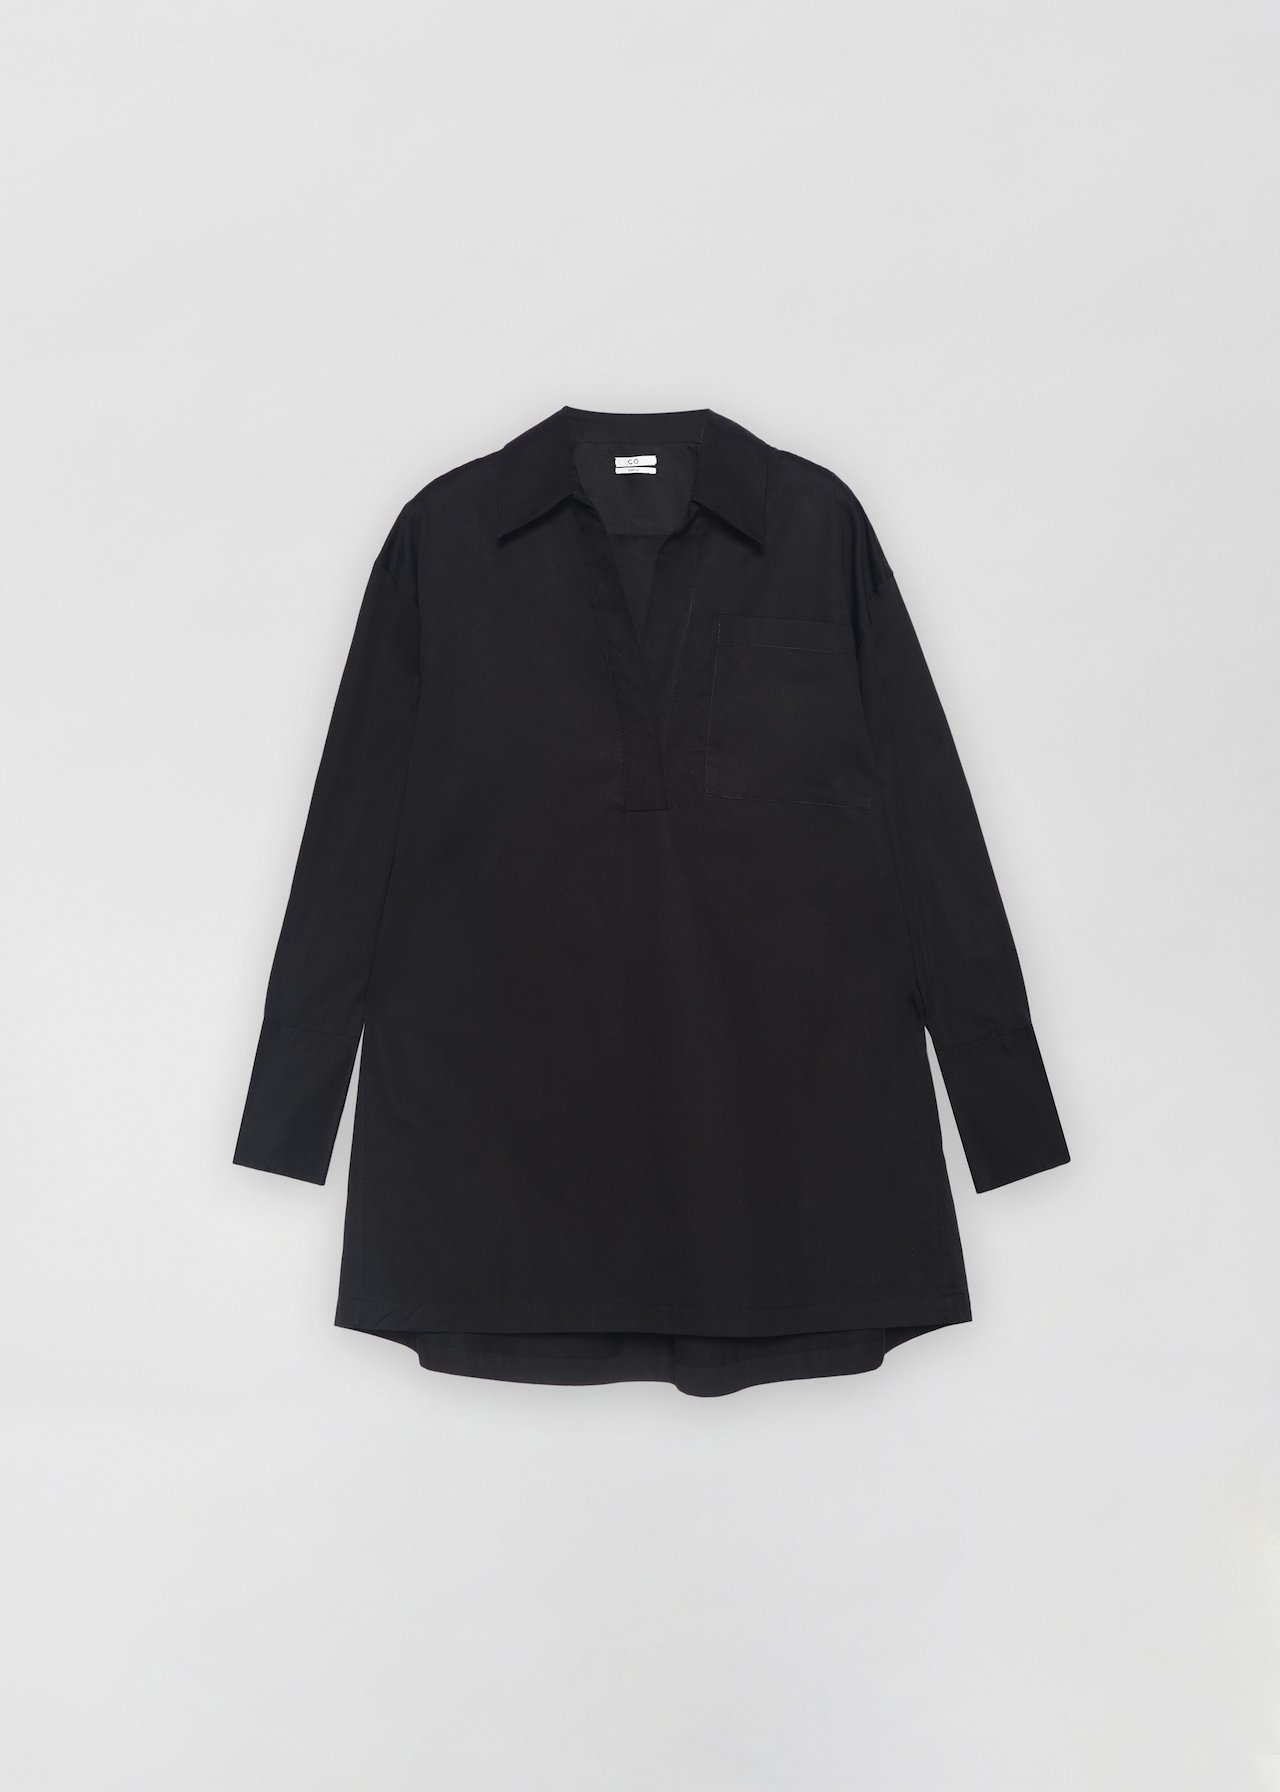 Half Placket Shirt in Cotton Poplin - Taupe in Black by Co Collections